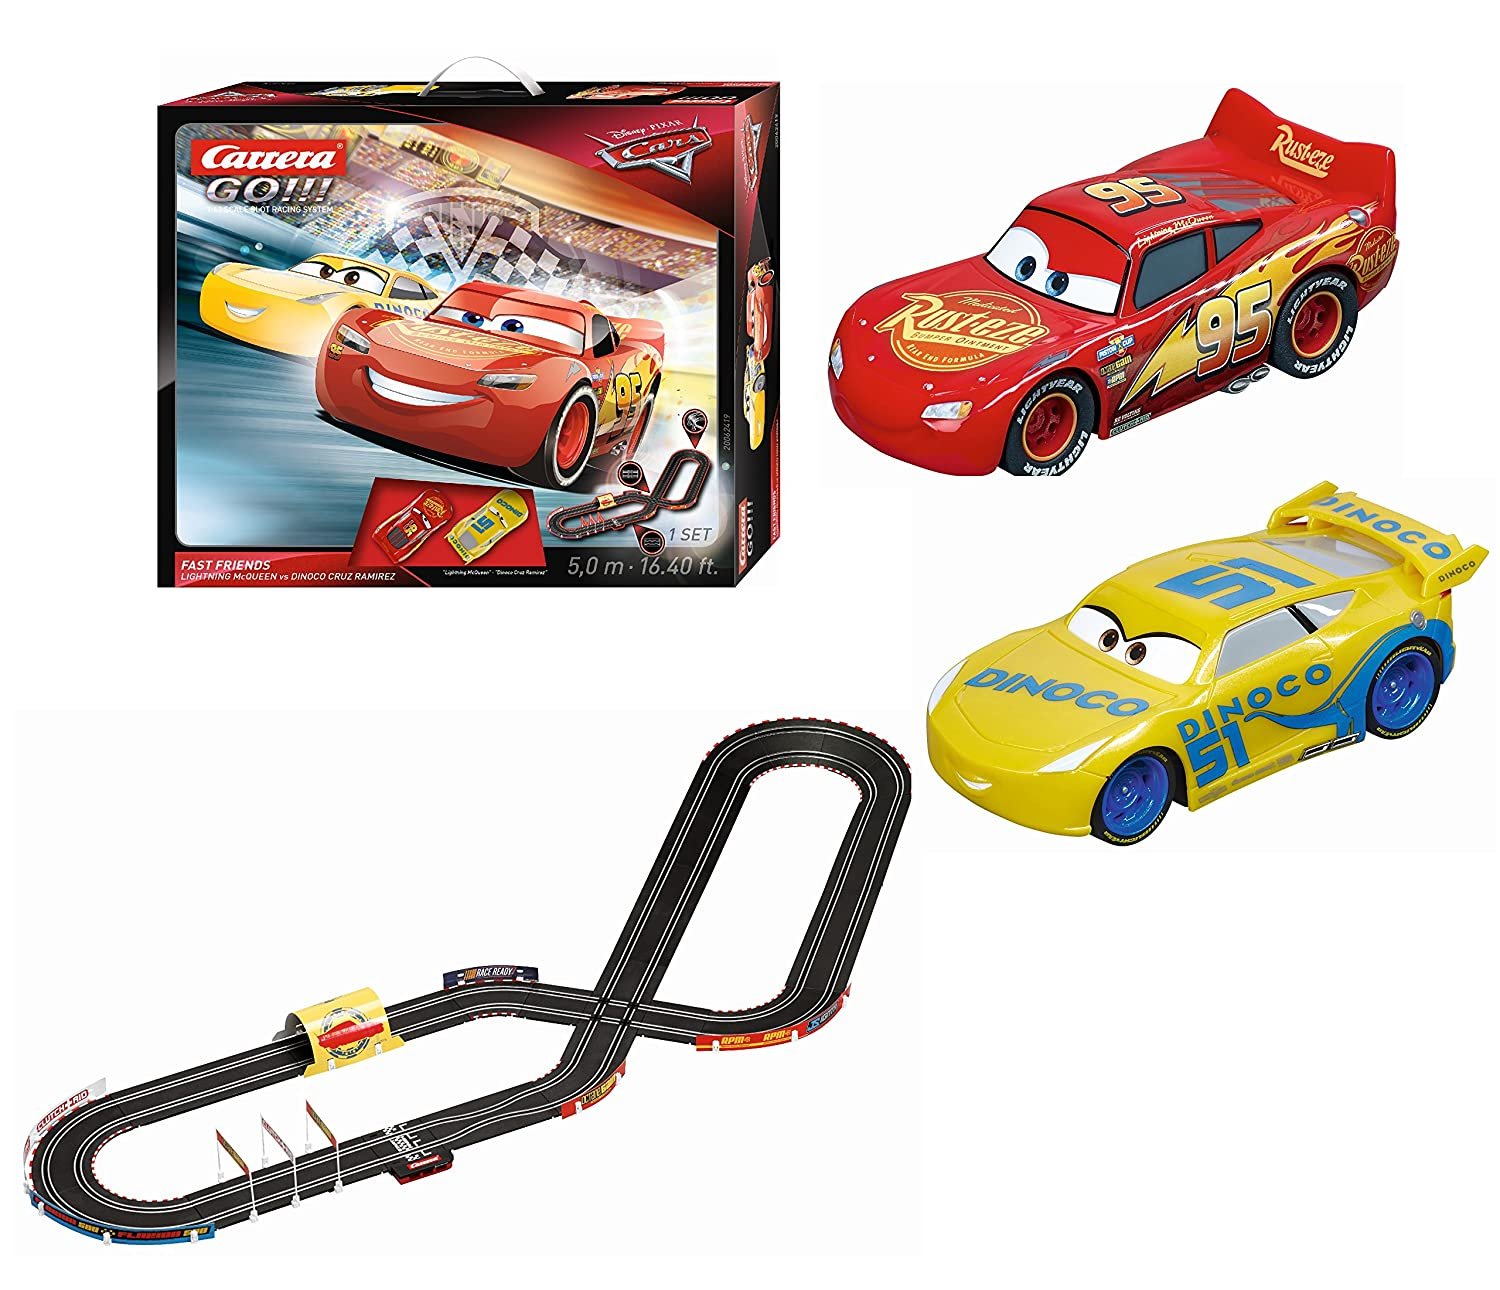 Carrera Go 62419 Disney Pixar Cars 3 Fast Friends Slot Ho Car Racing Track Power Wiring Race Set 143 Scale Analog System Includes 2 Lightning Mcqueen And